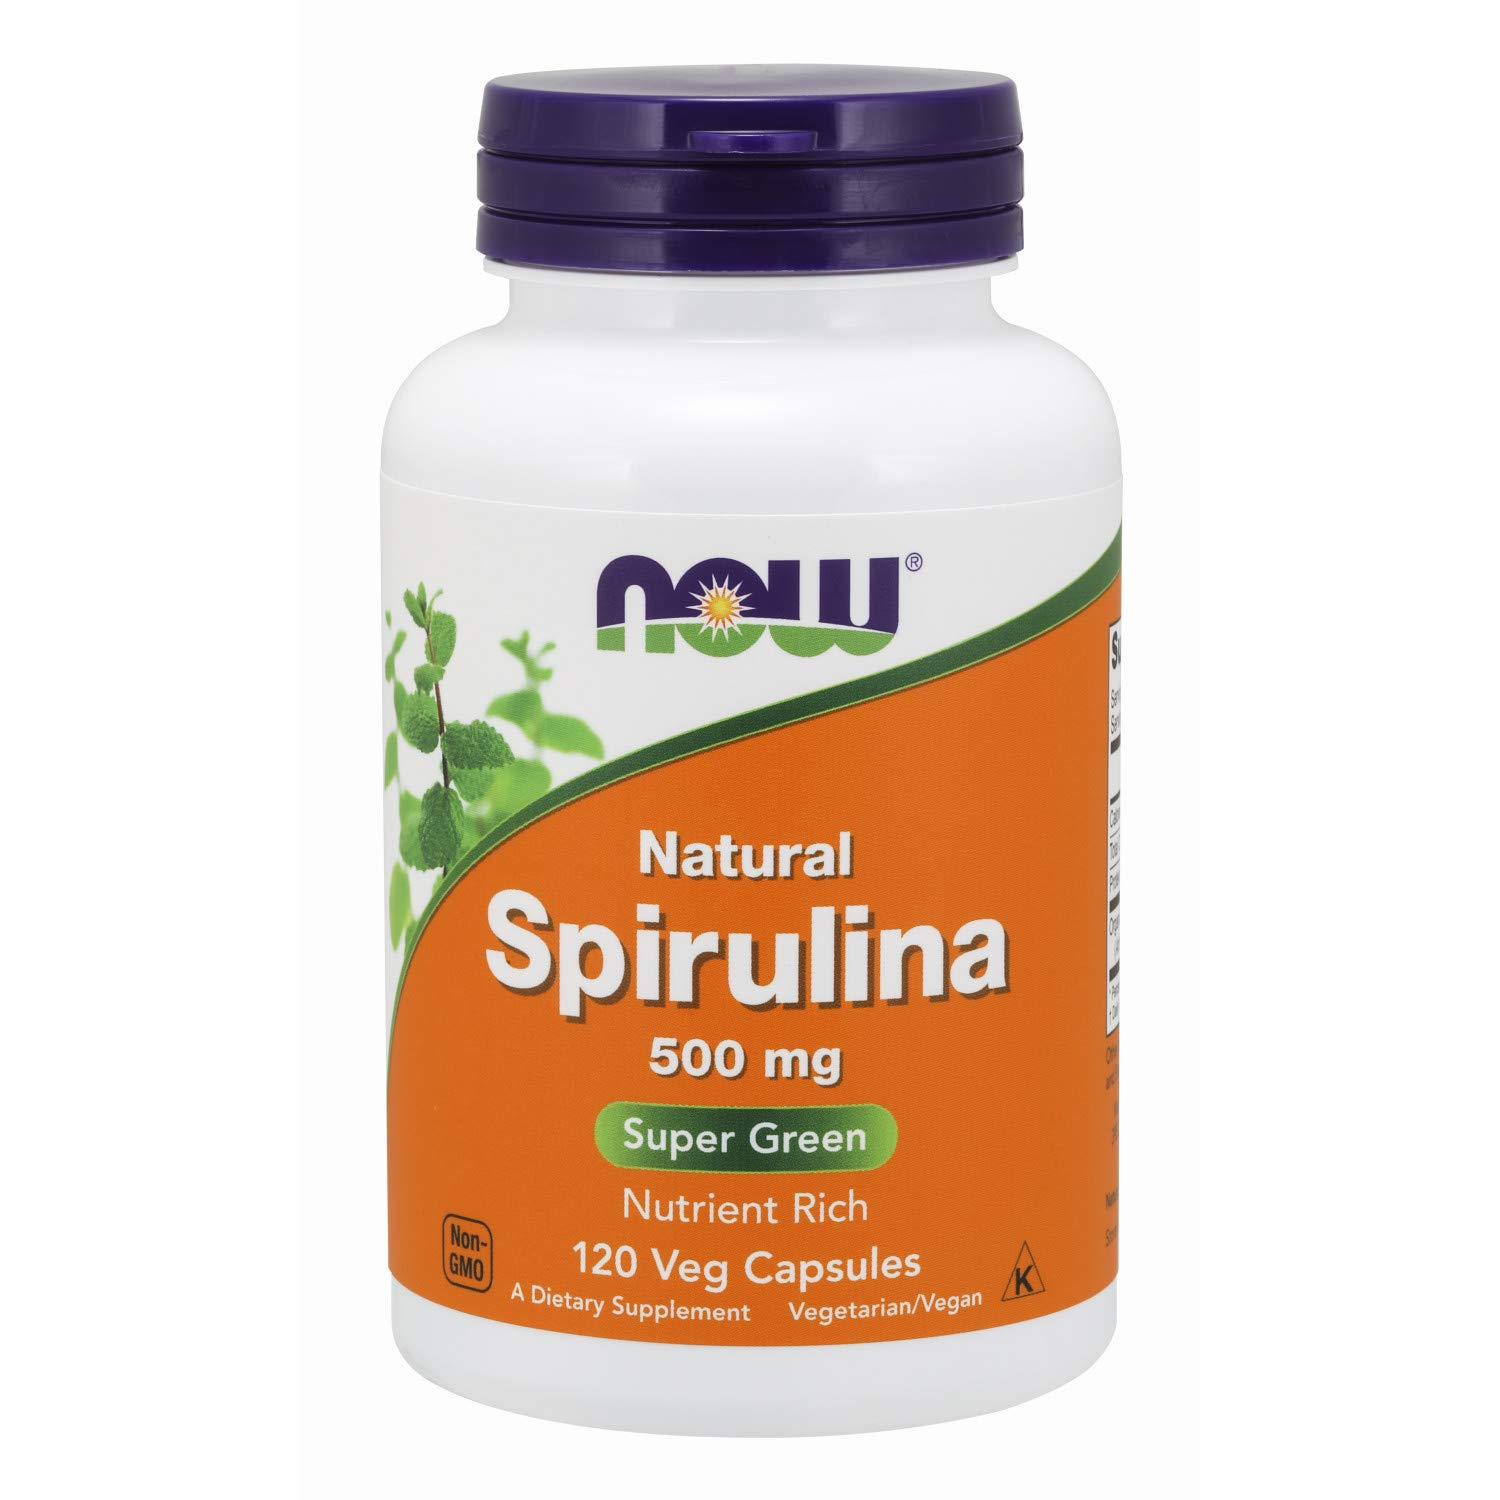 NOW Supplements, Natural Spirulina 500 mg with Beta-Carotene (Vitamin A) and Vitamin B-12, and naturally occurring Protein and GLA (Gamma Linolenic Acid), 120 Veg Capsules